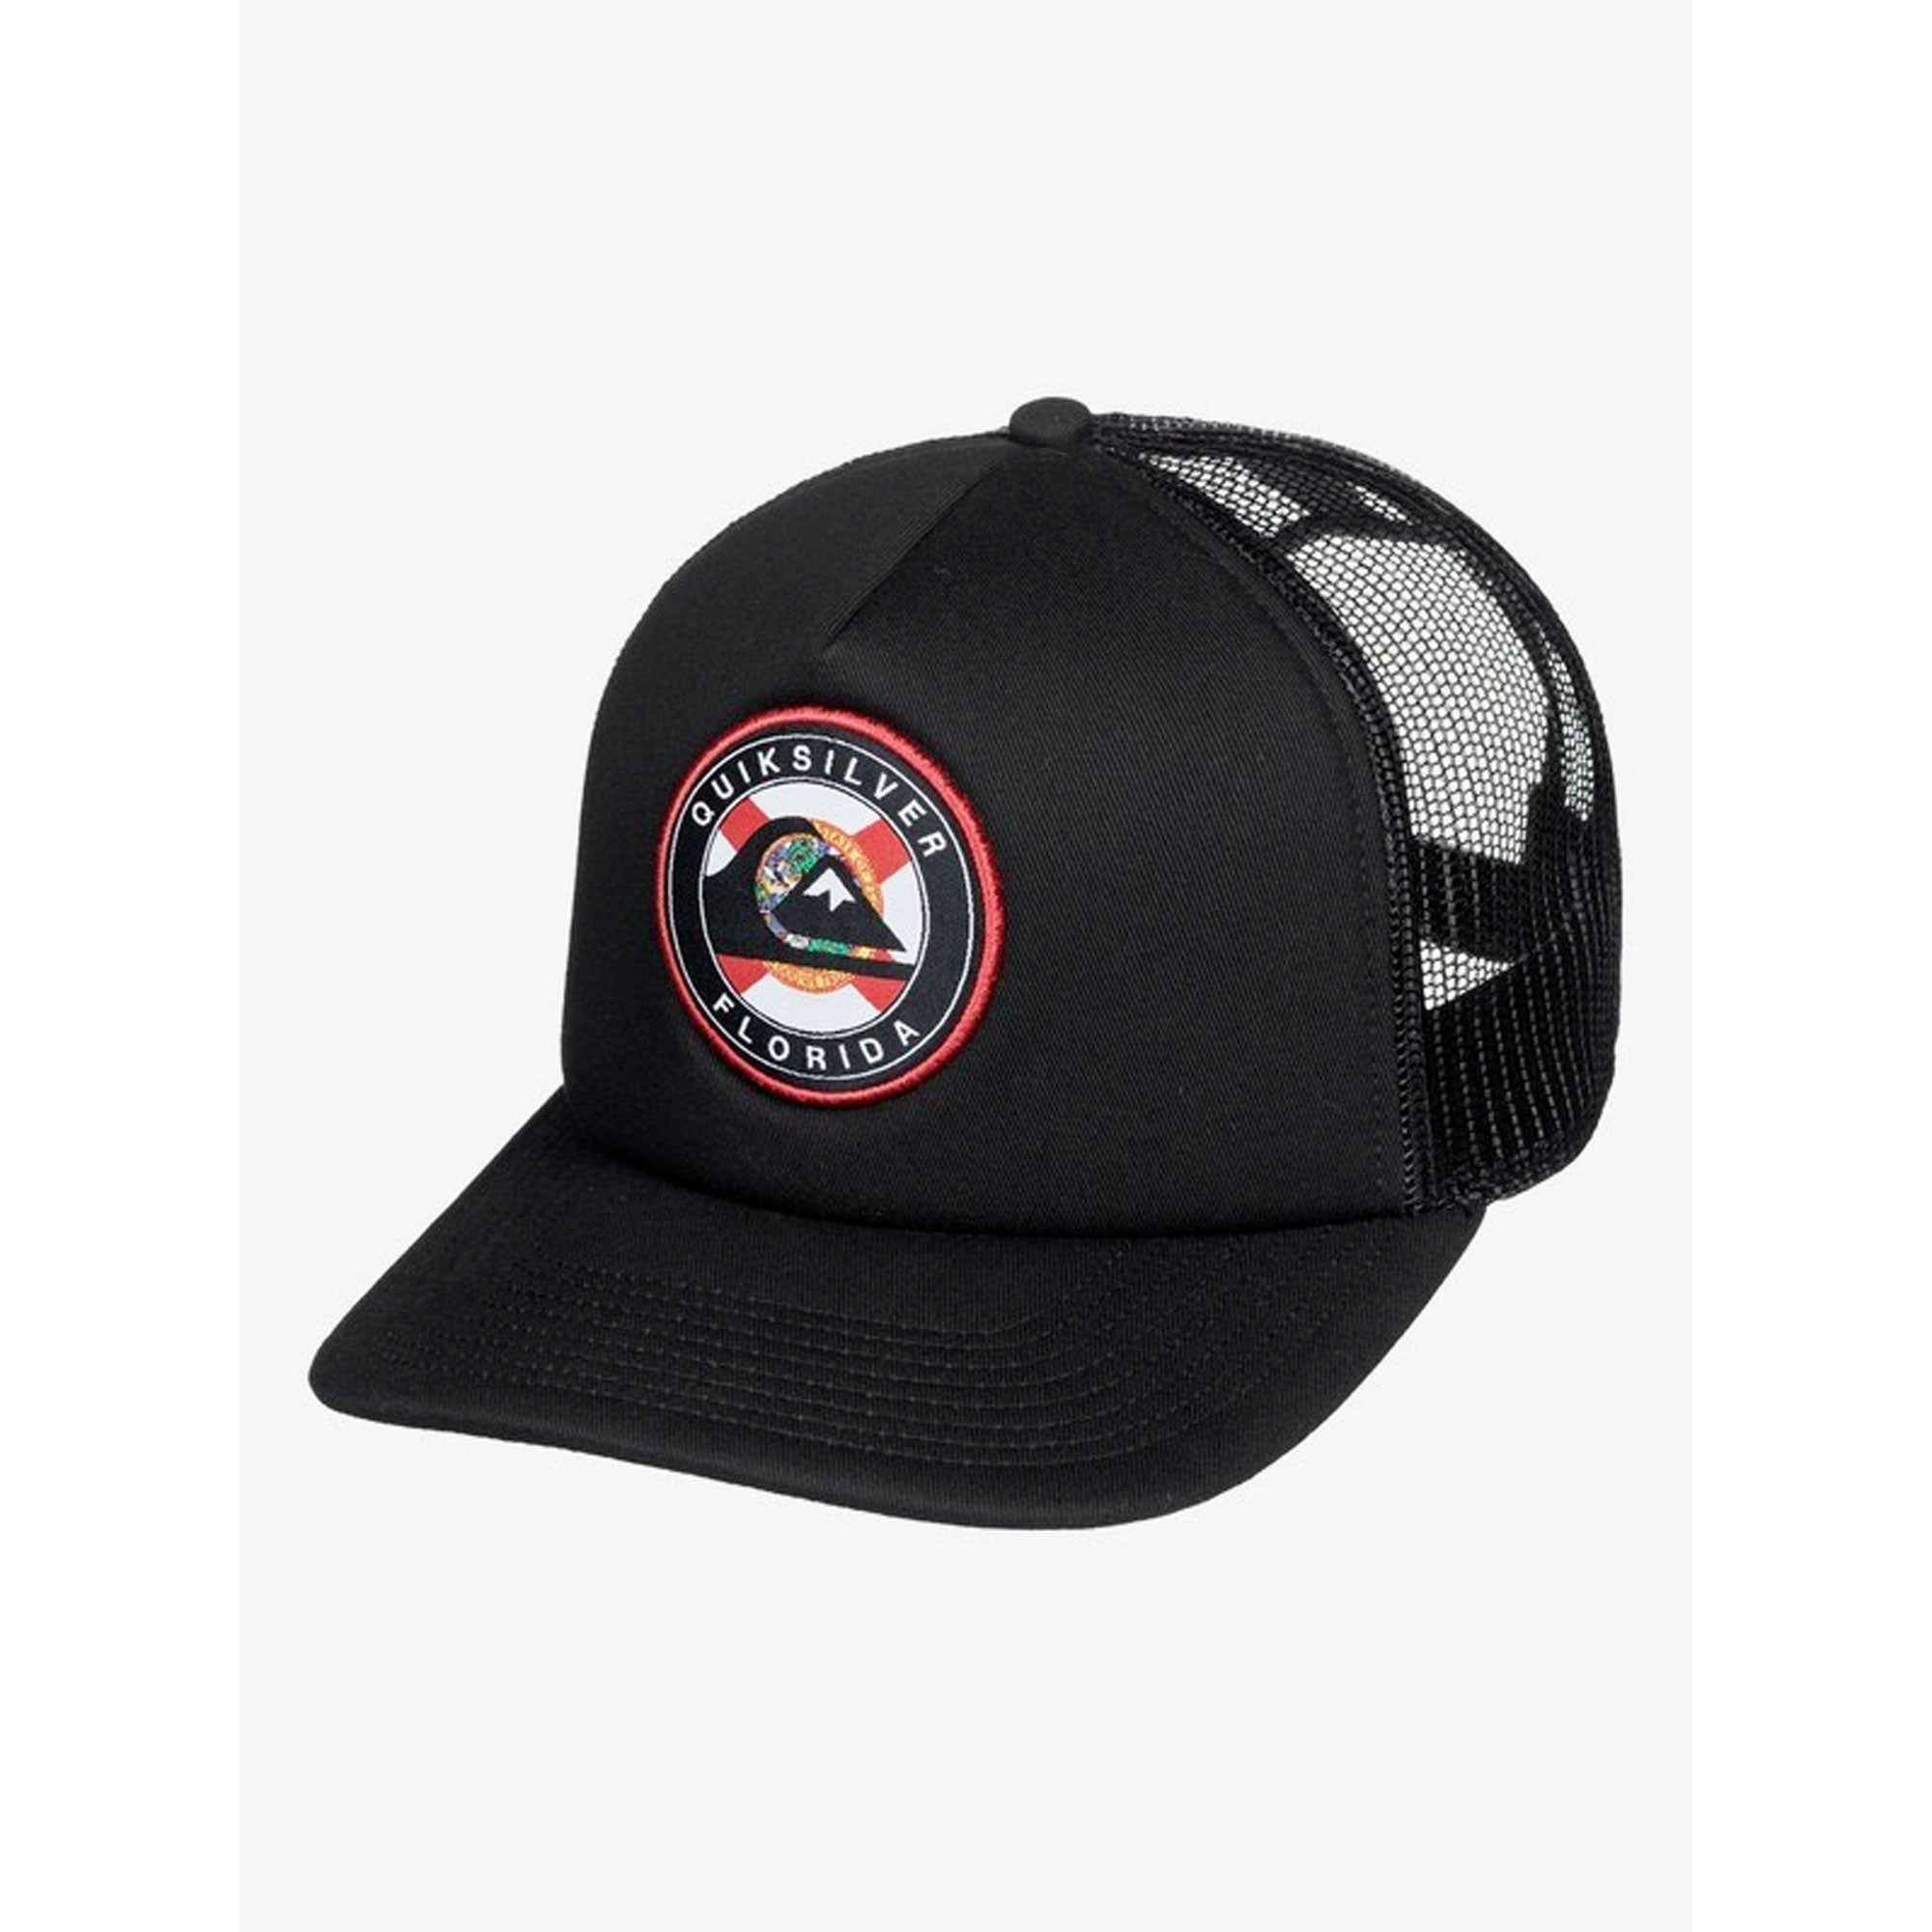 Quiksilver Destinado Florida Trucker Hat